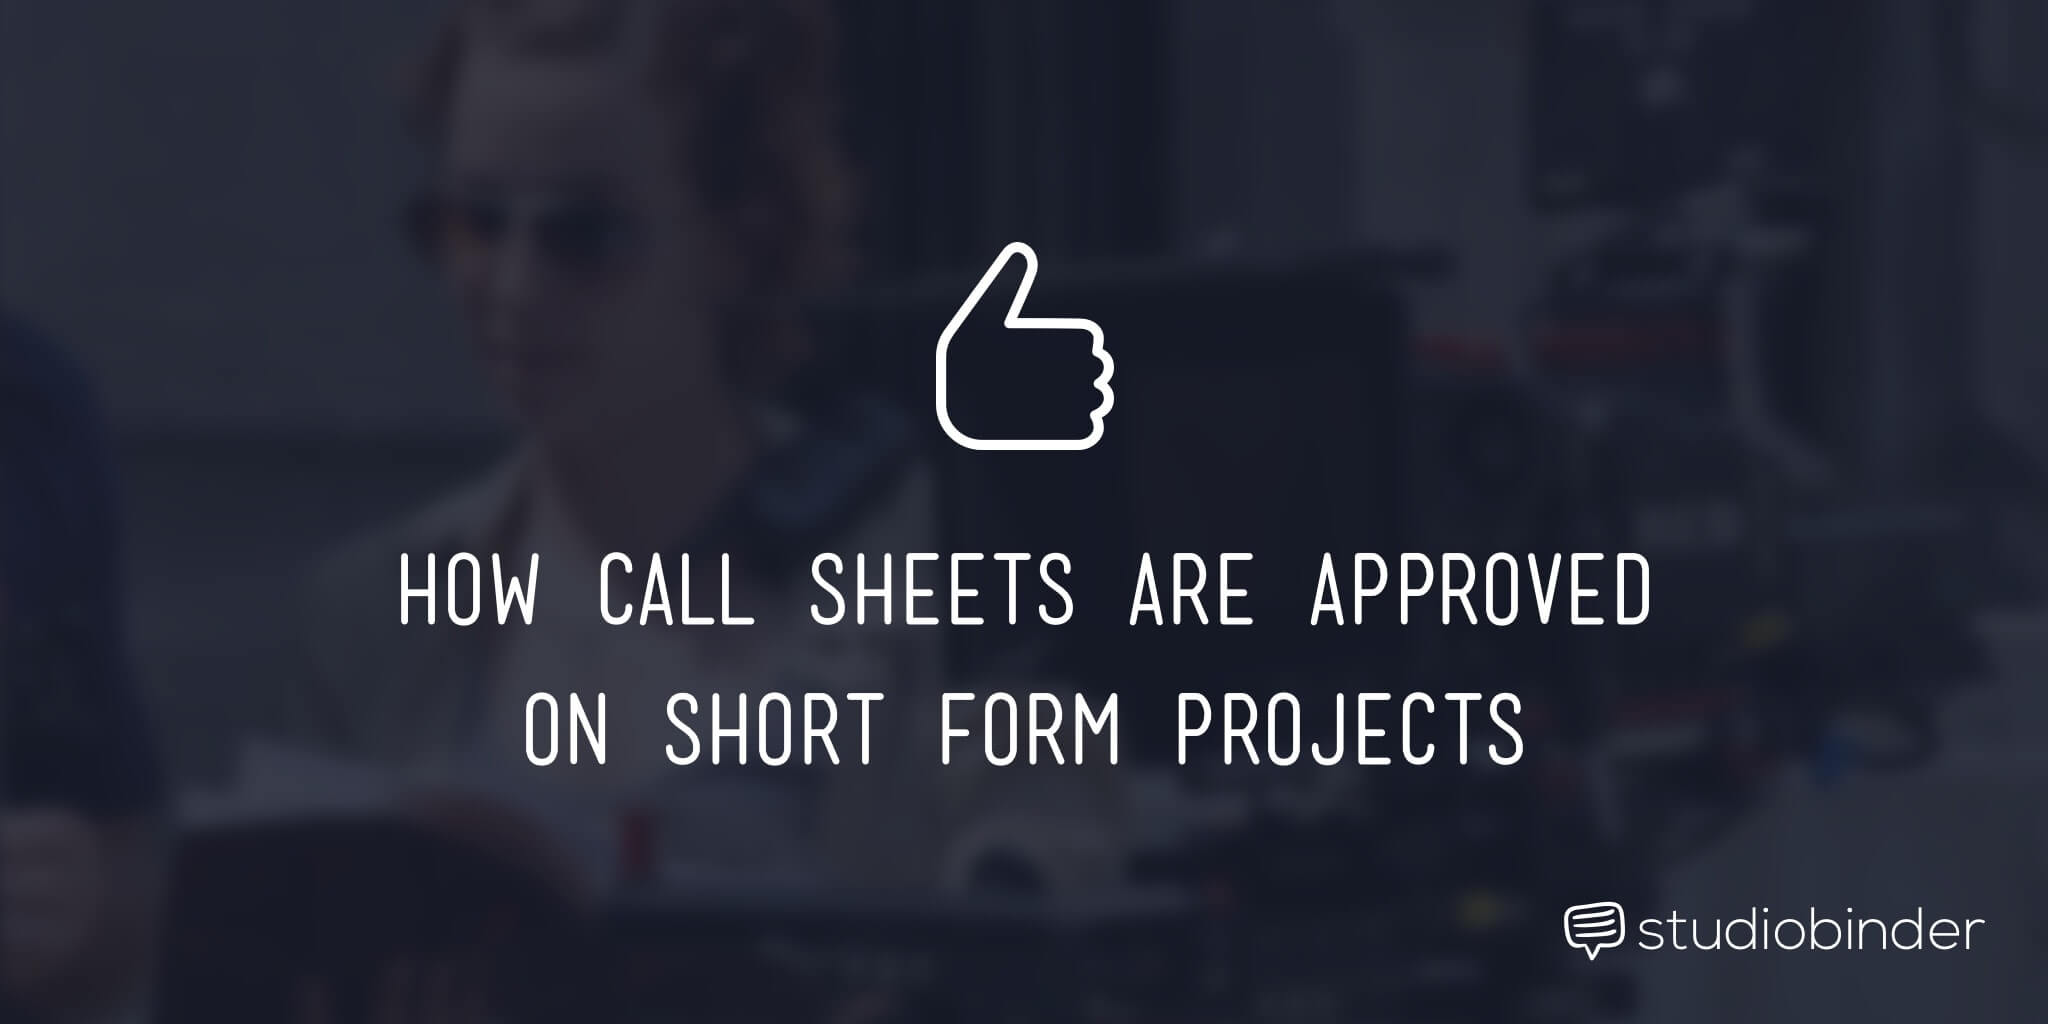 How Call Sheets are Approved on Short Form